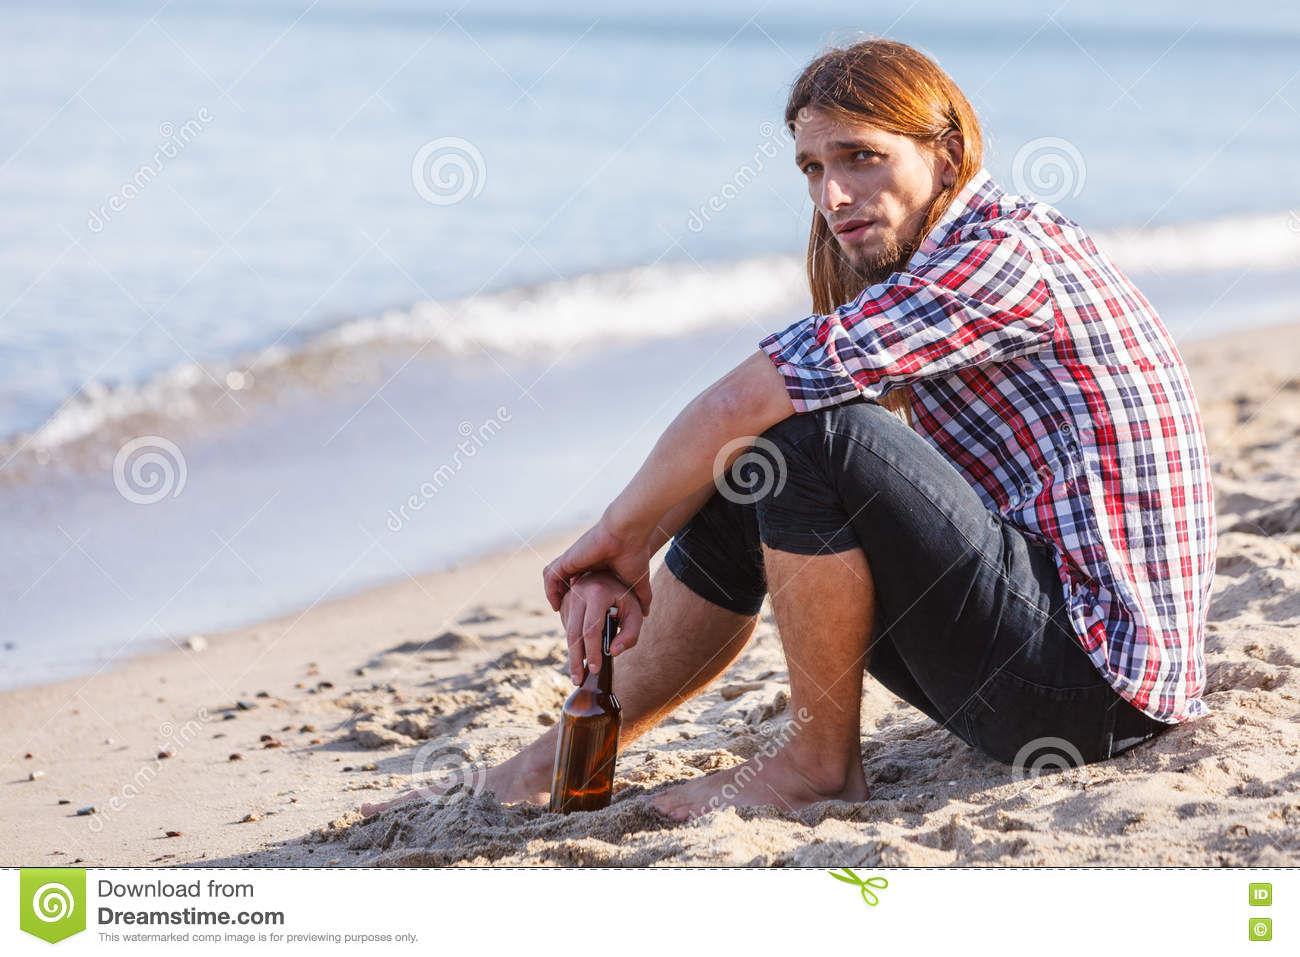 man-depressed-wine-bottle-sitting-beach-outdoor-people-abuse-alcoholism-problems-81123126.jpg